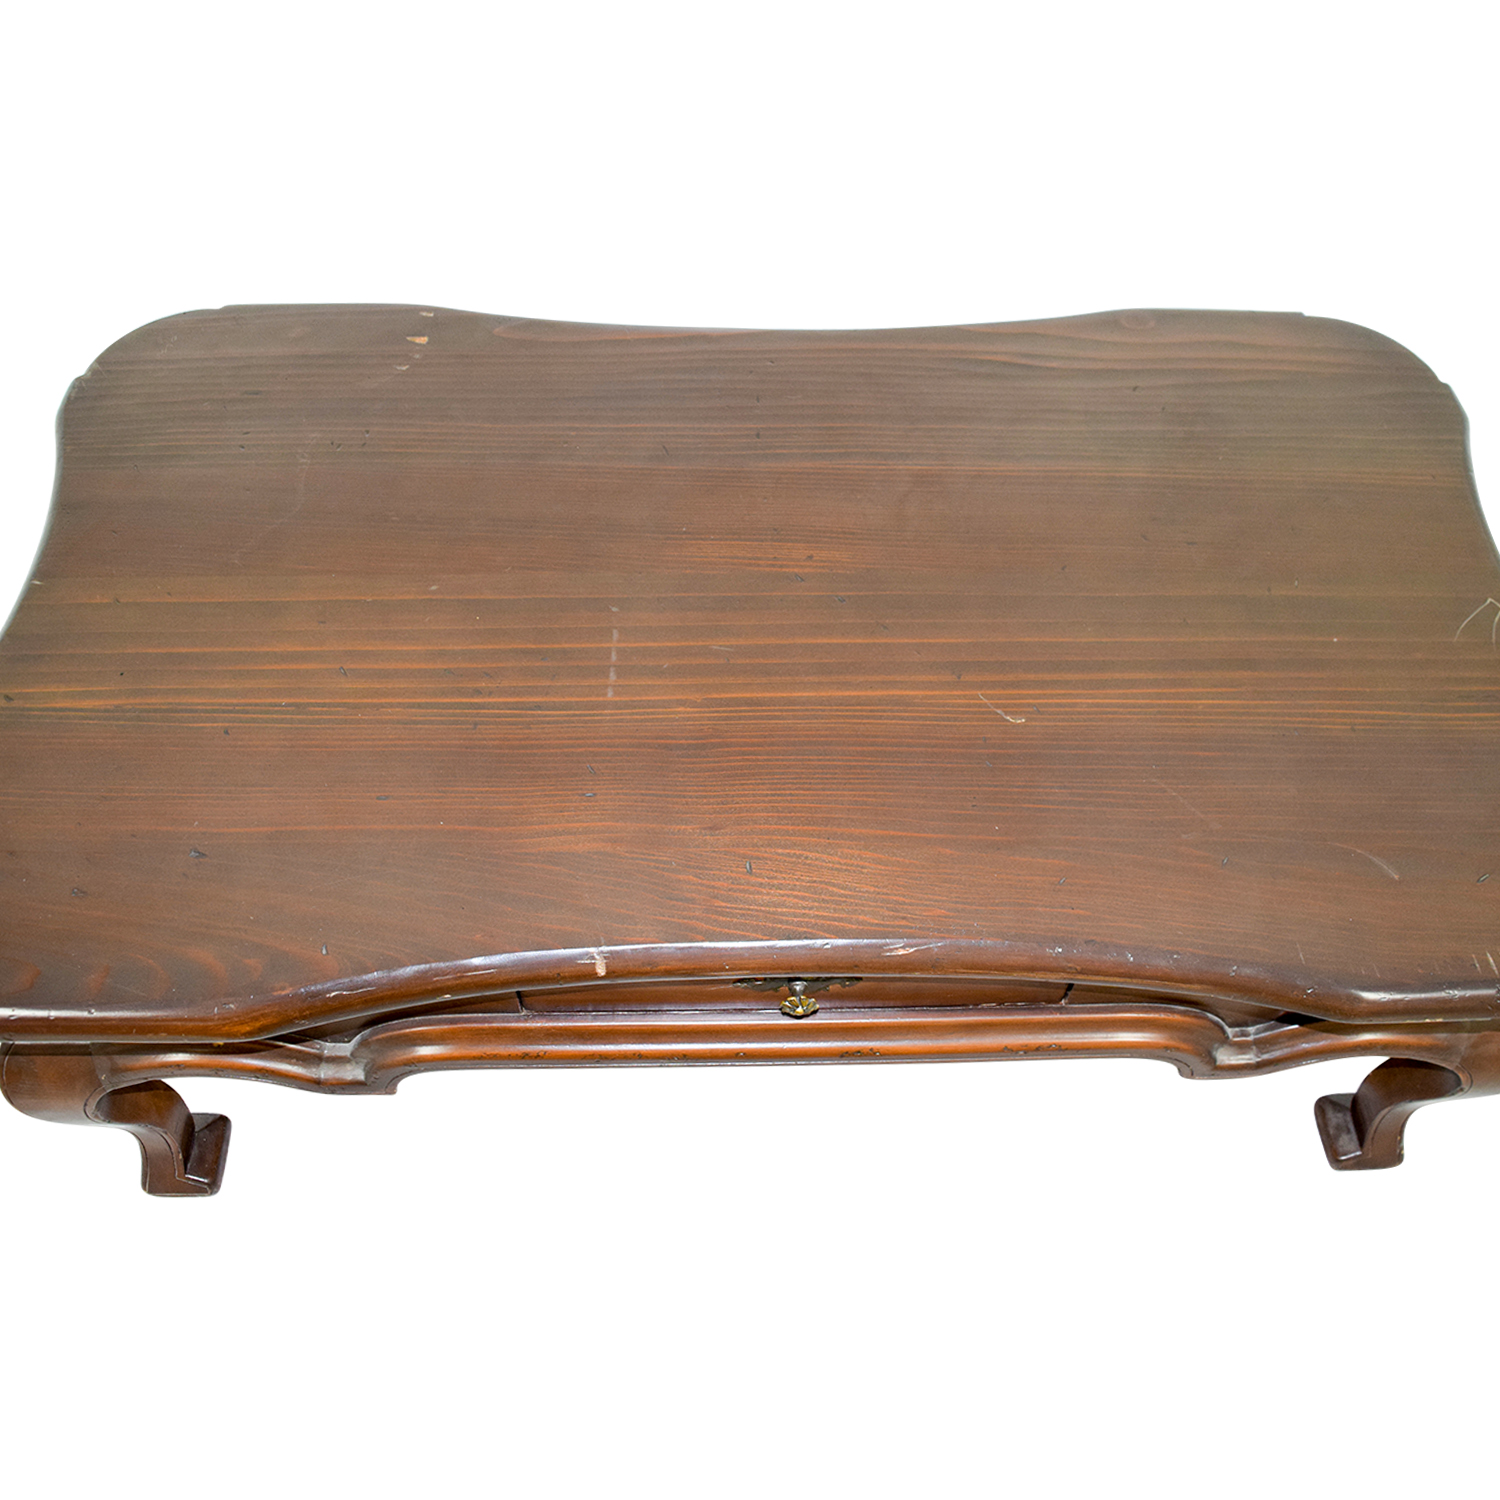 shop Furniture Masters Furniture Masters Wood Curved Single Drawer Coffee Table online